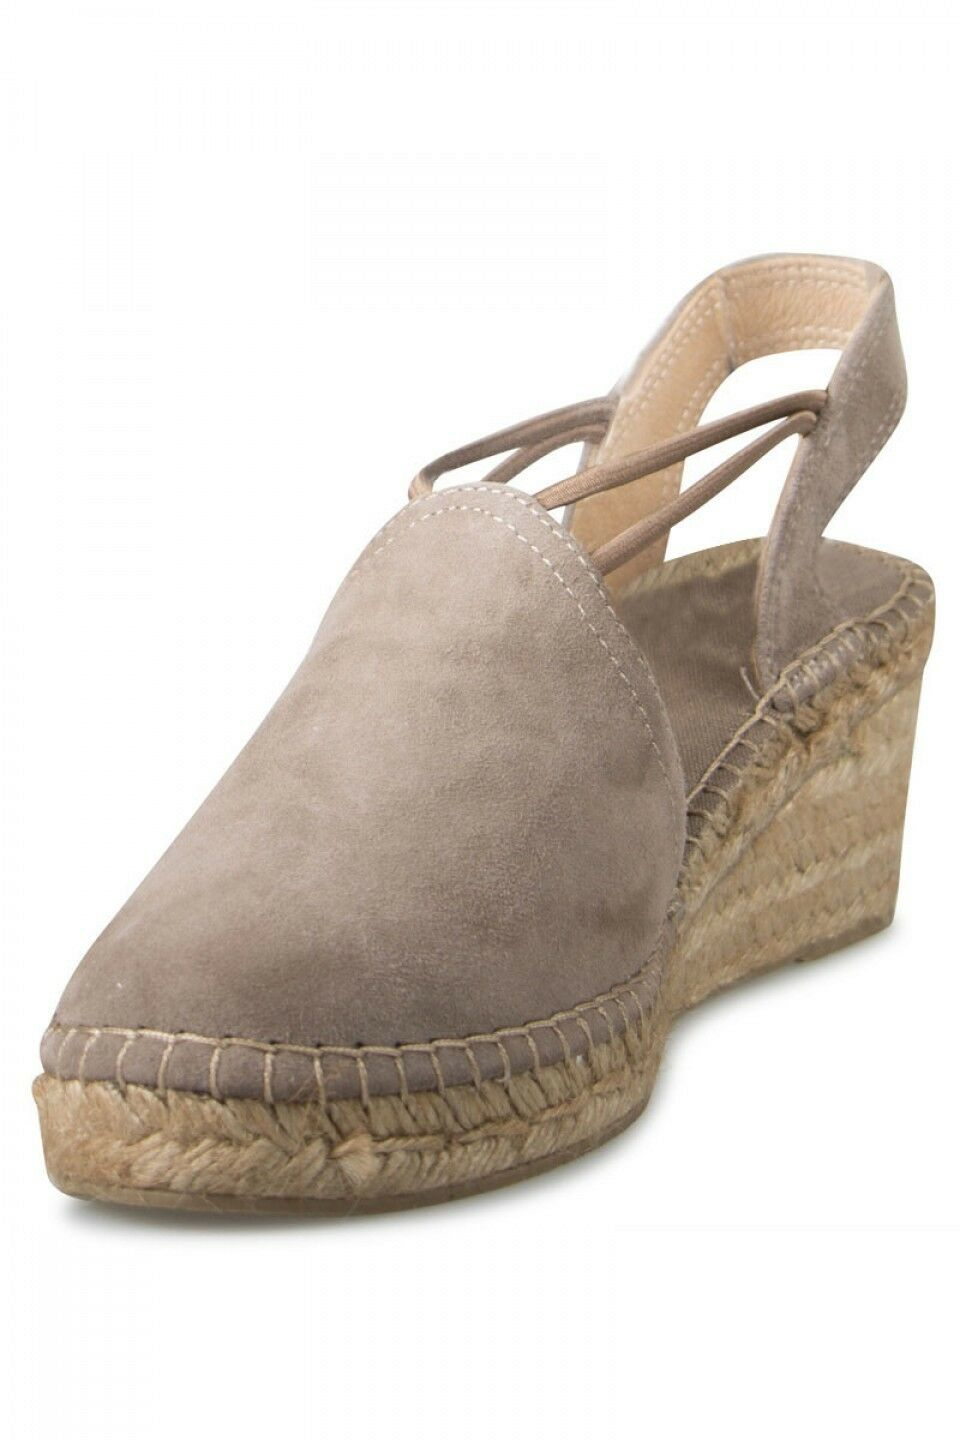 TONI PONS WOMEN'S TREMP WEDGE ESPADRILLES IN SUEDE, MADE IN SPAIN